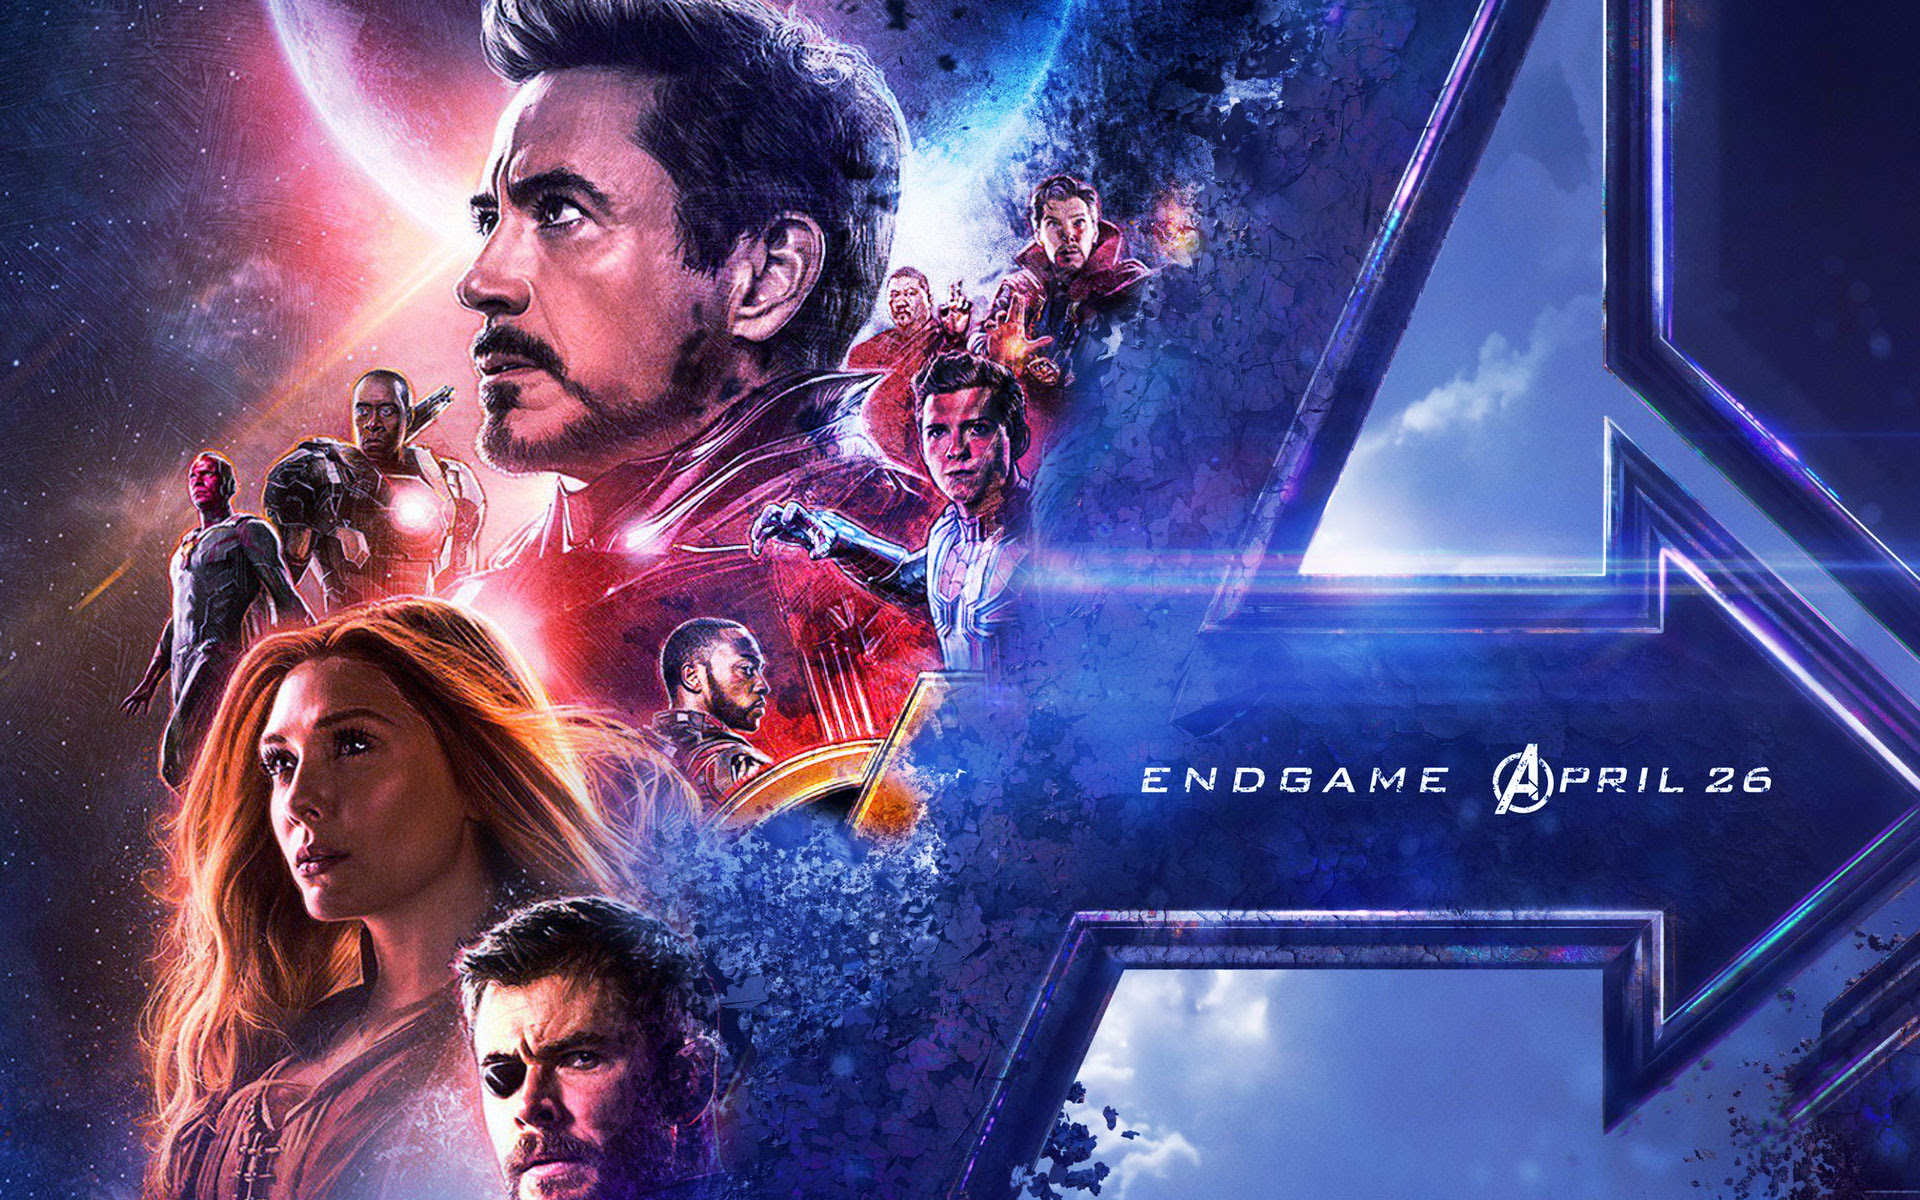 Avengers Endgame Wallpaper 1920x1080 Movie Stream 4k Online